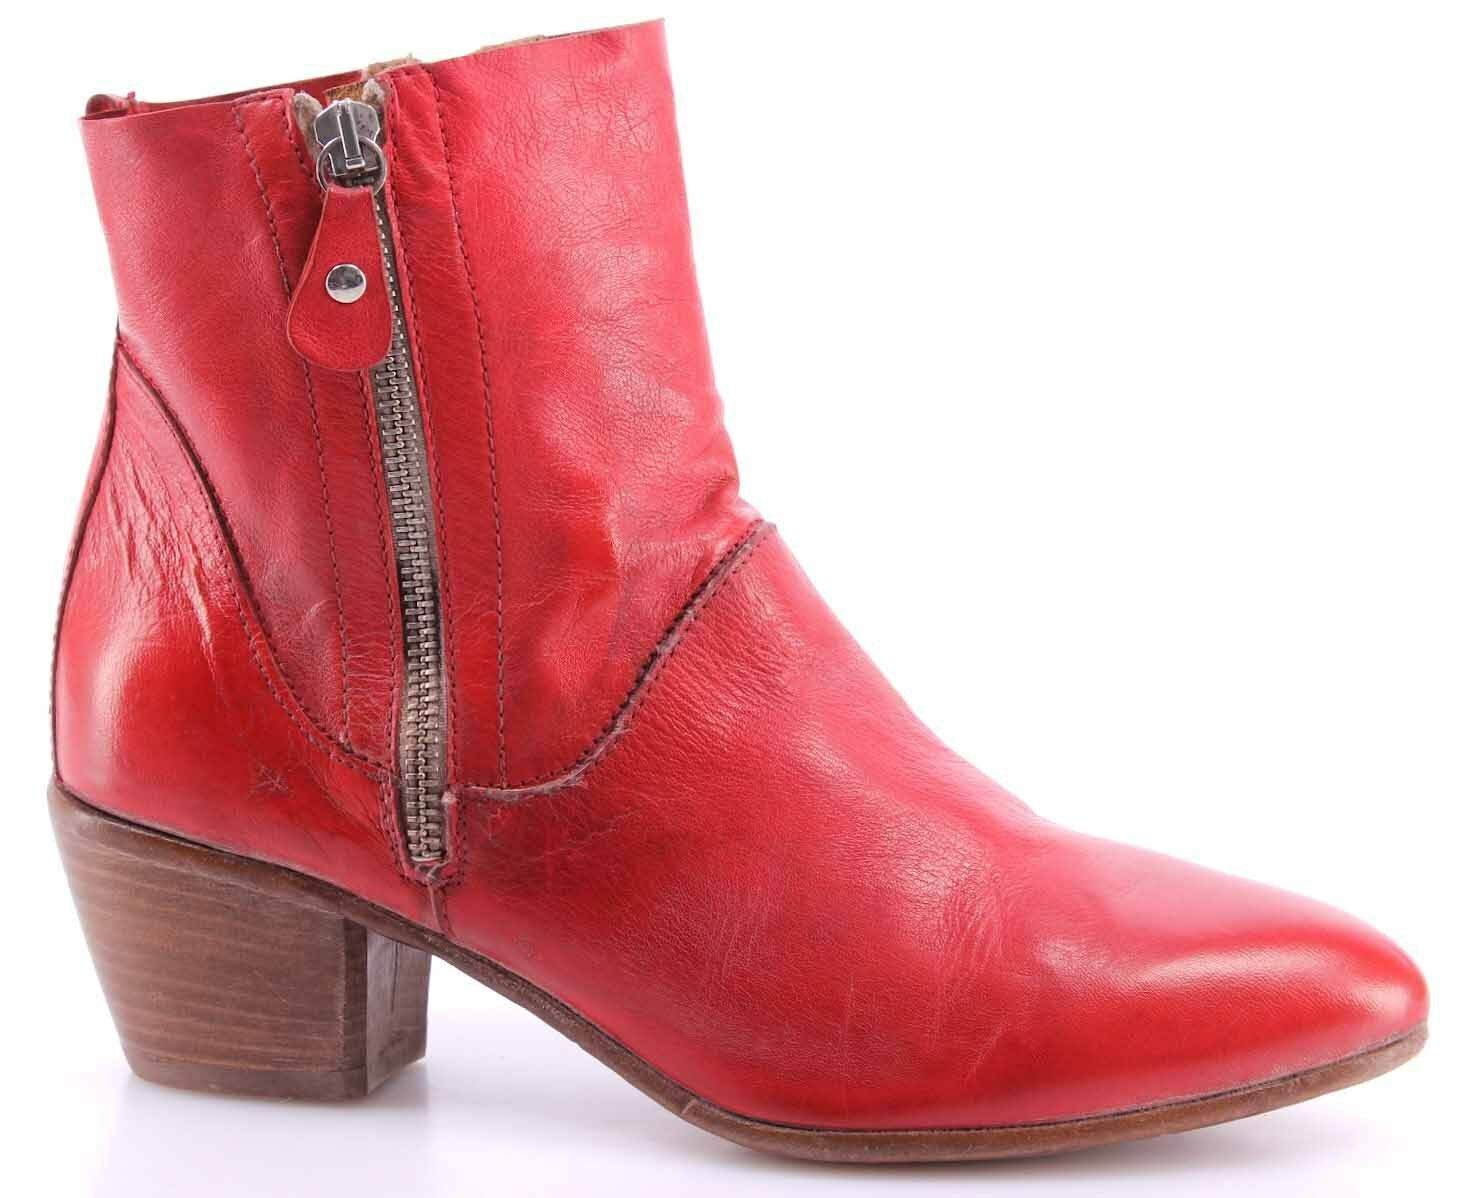 Women's shoes Ankle Boots MOMA 49501-8F 49501-8F 49501-8F Siviglia red Vintage Leather Red New b15643